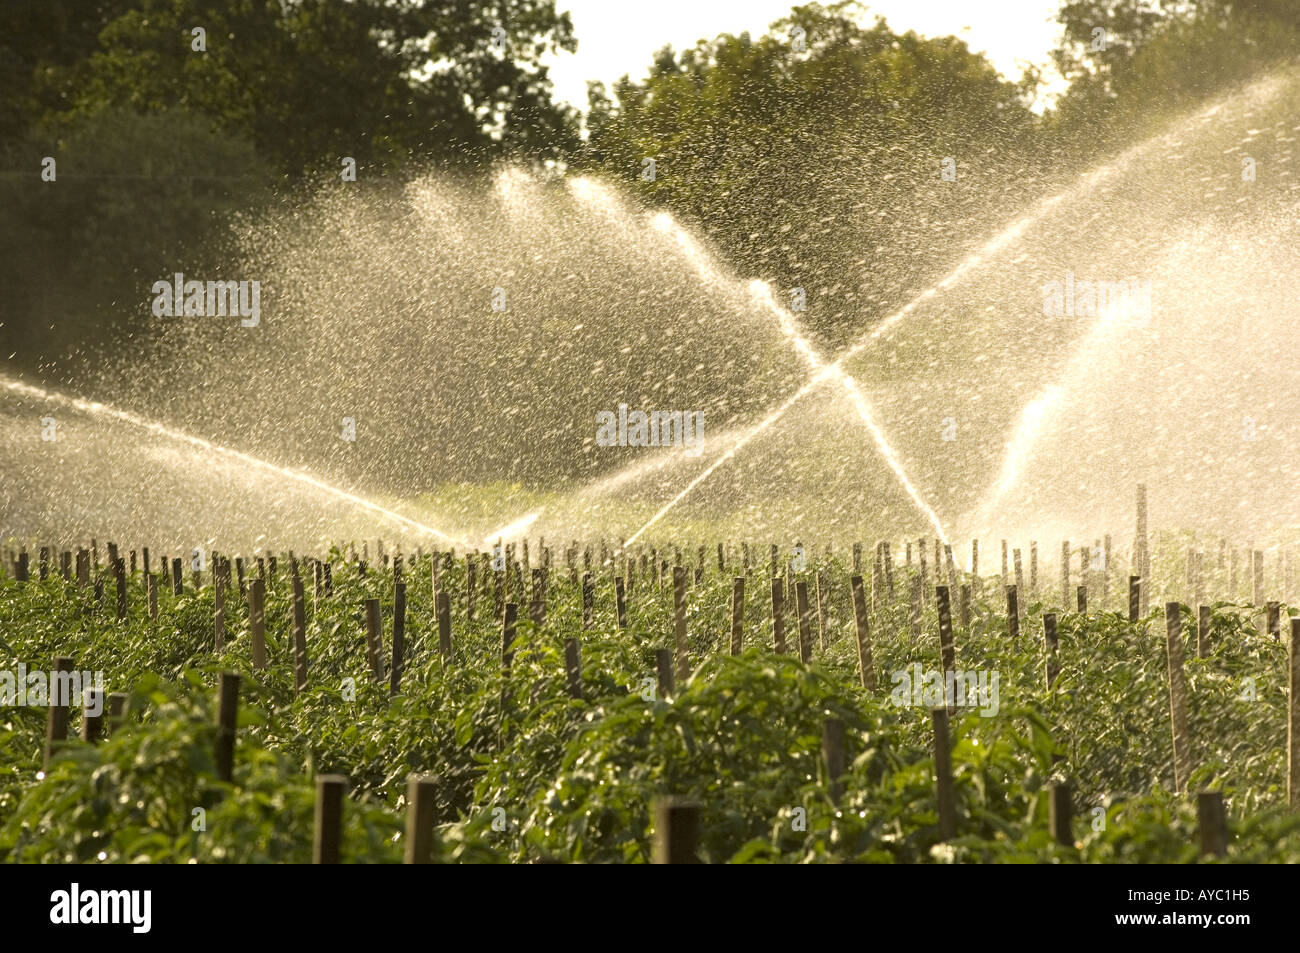 Irrigation Sprays Watering Farm Crops Stock Photo, Royalty Free ...